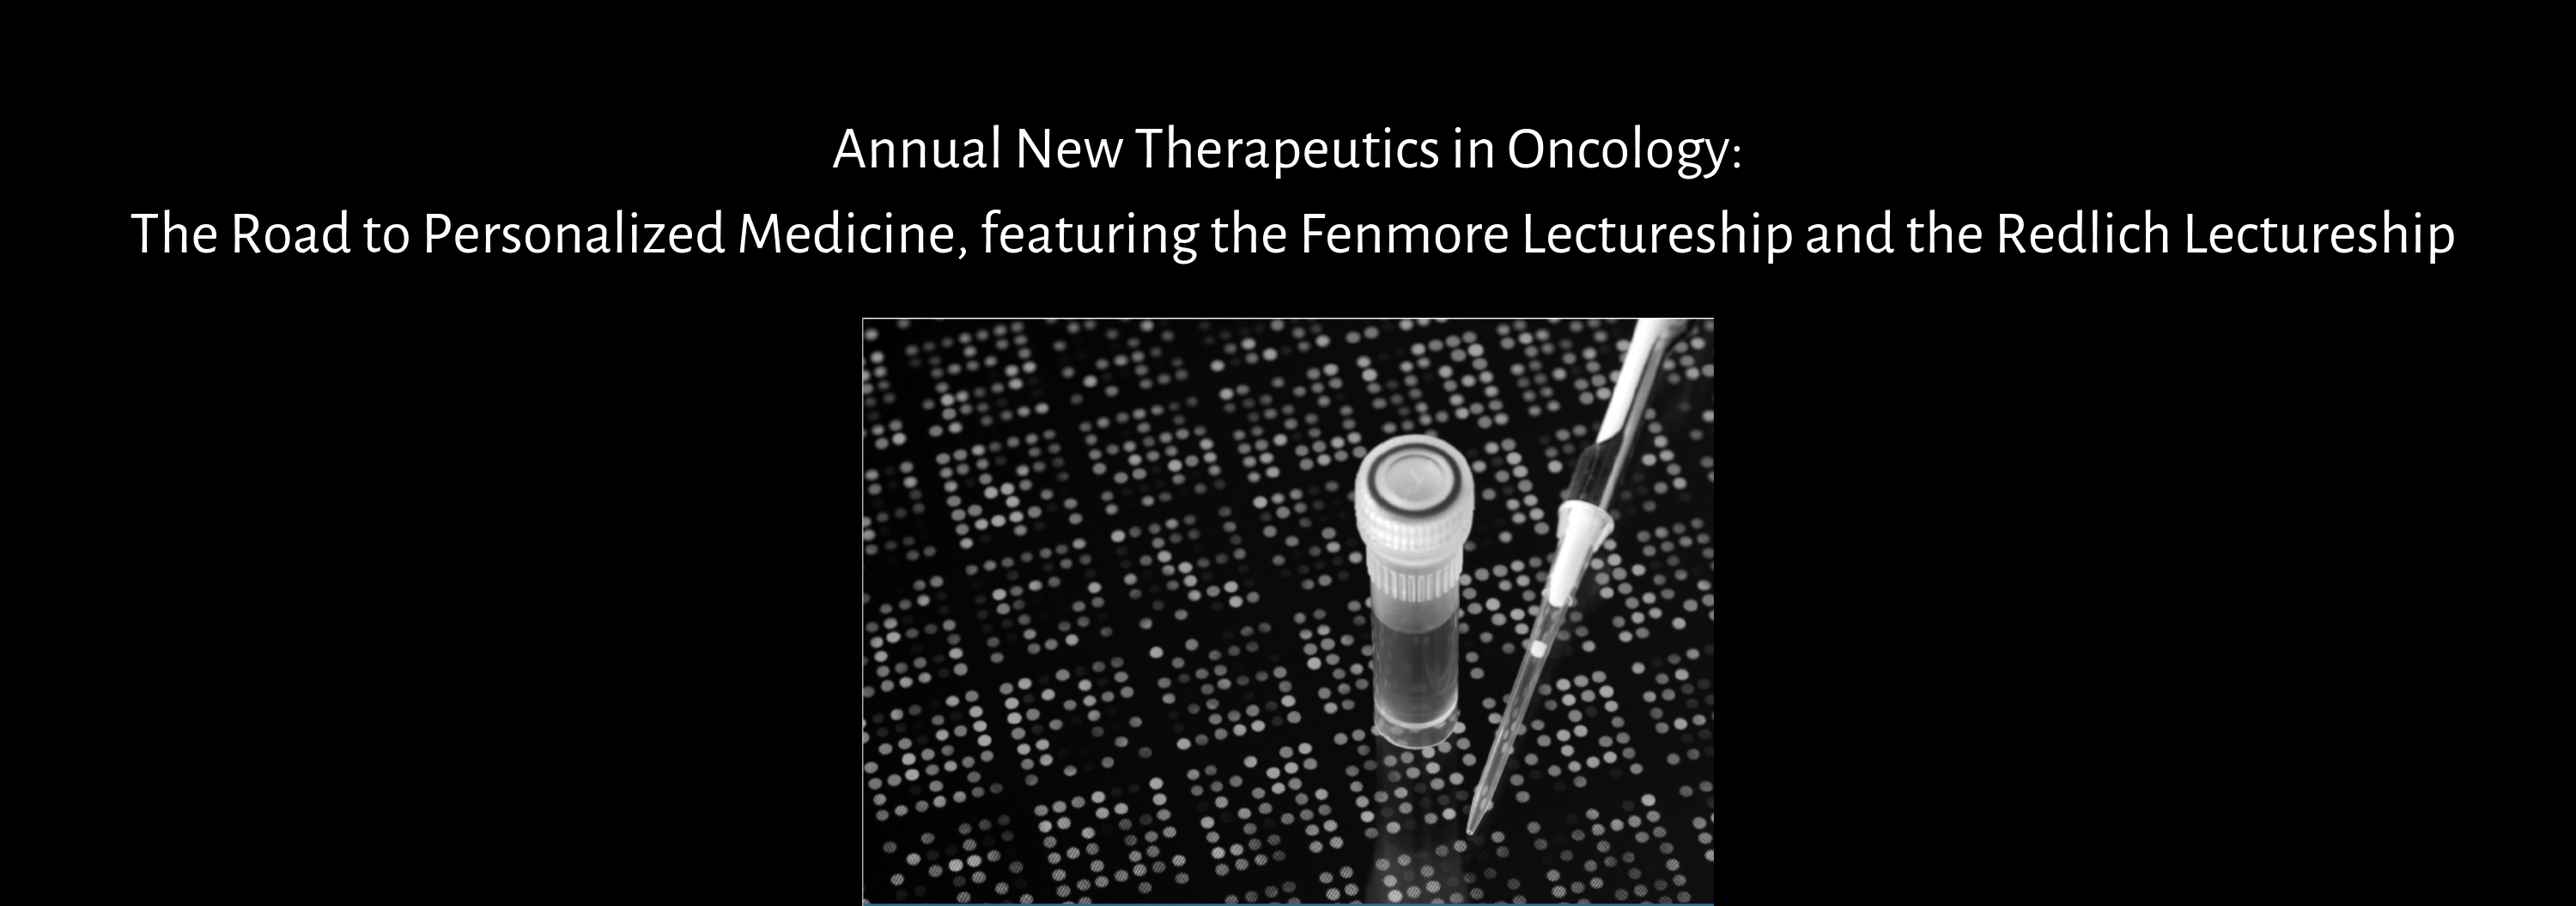 8th Annual New Therapeutics in Oncology: The Road to Personalized Medicine, featuring the Fenmore Lectureship and the Redlich Lectureship Banner